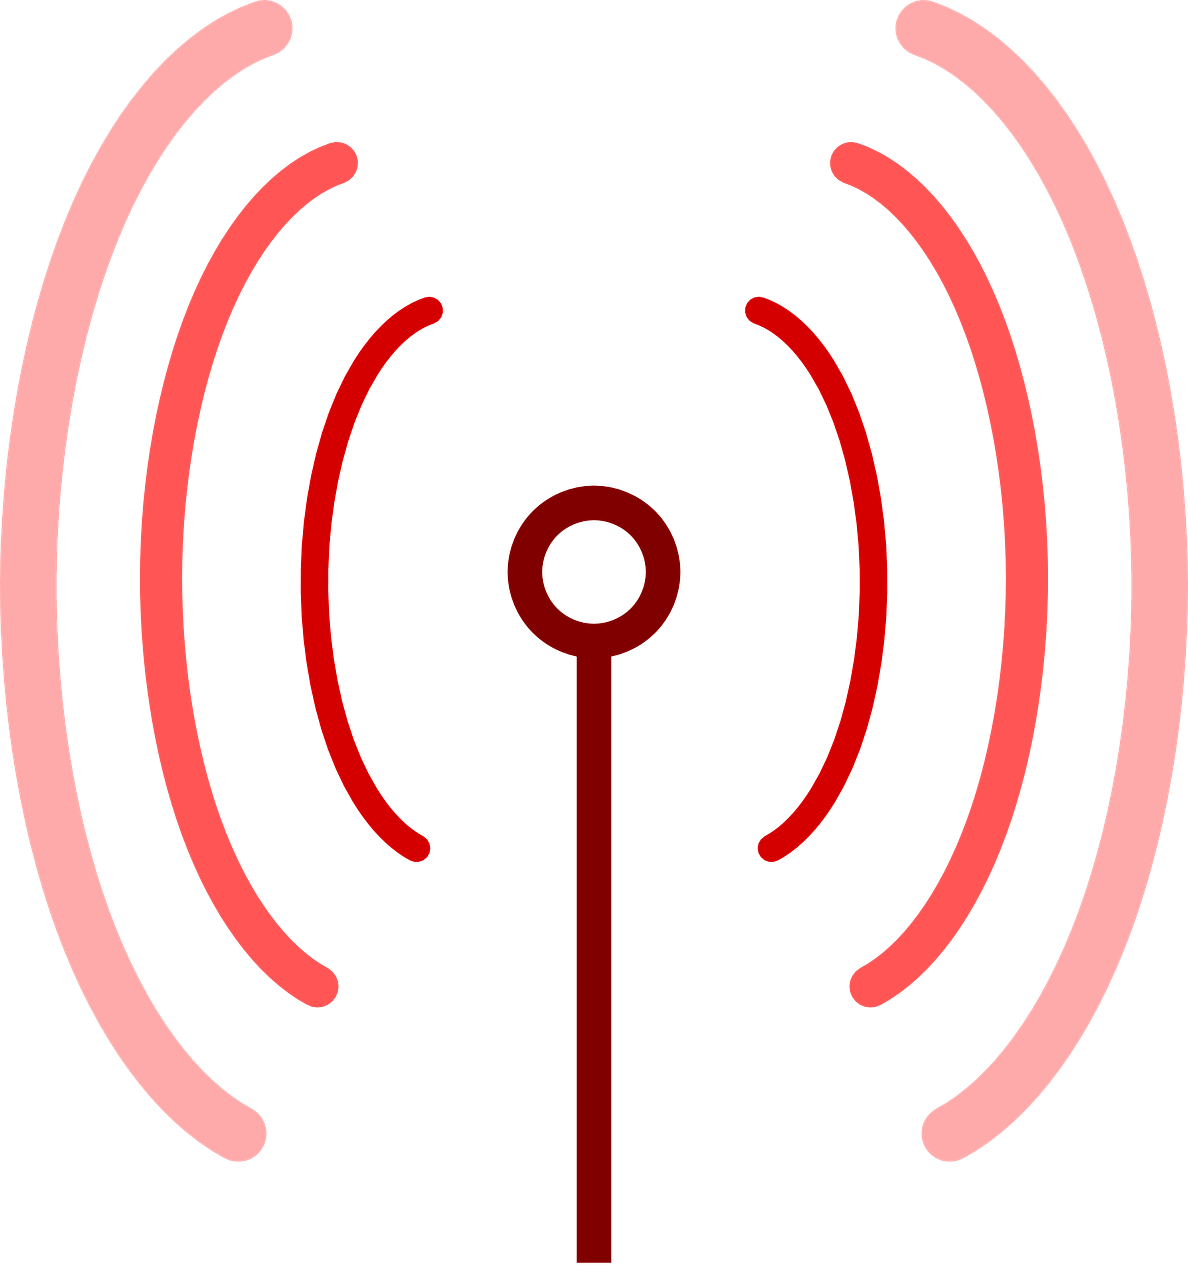 Red Antenna ubeam